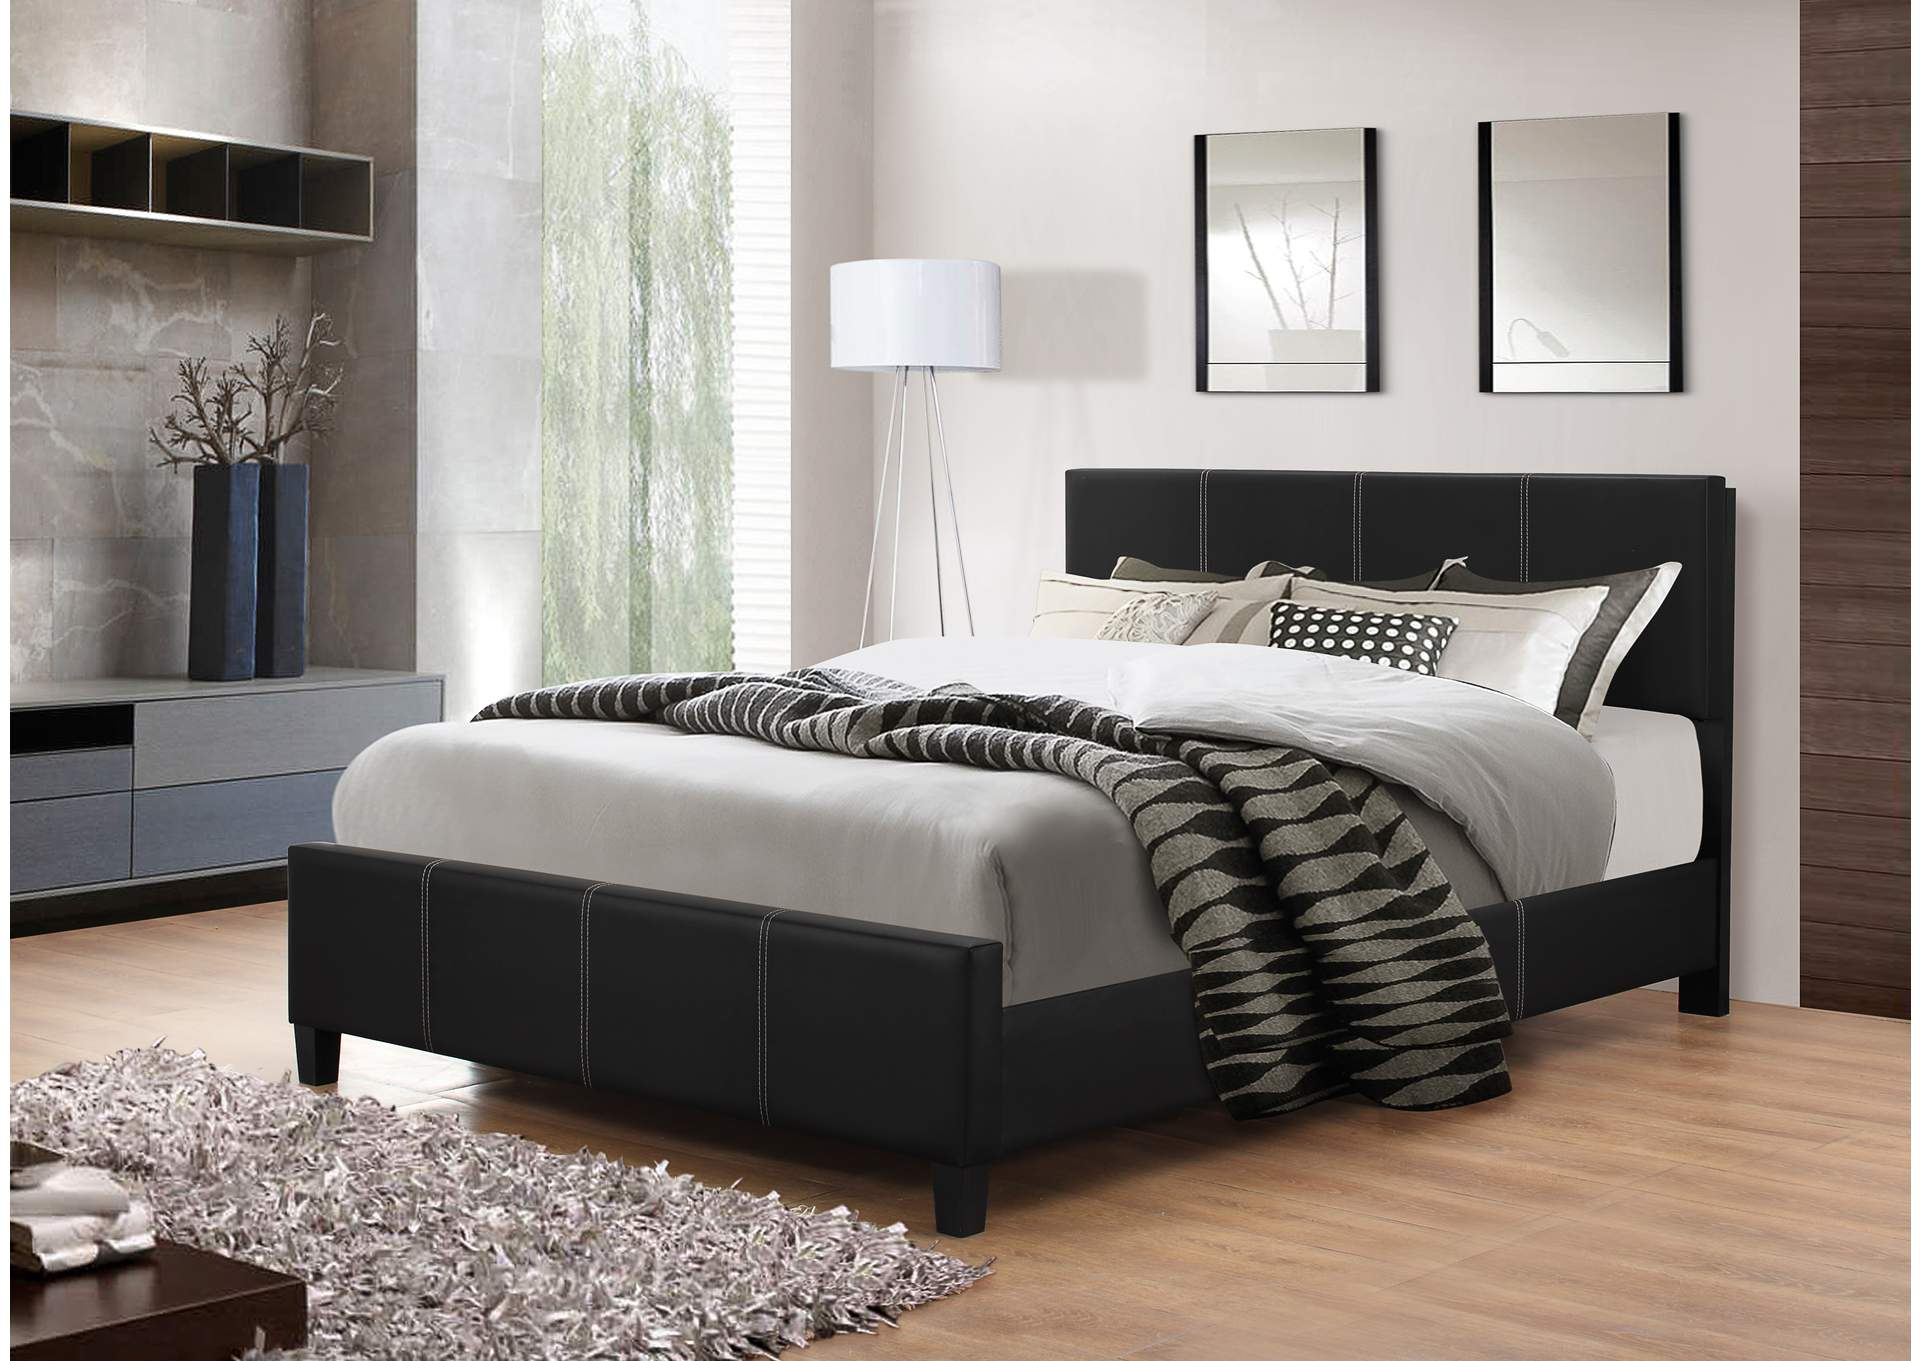 The Roomstyle Furniture Black Twin Bed